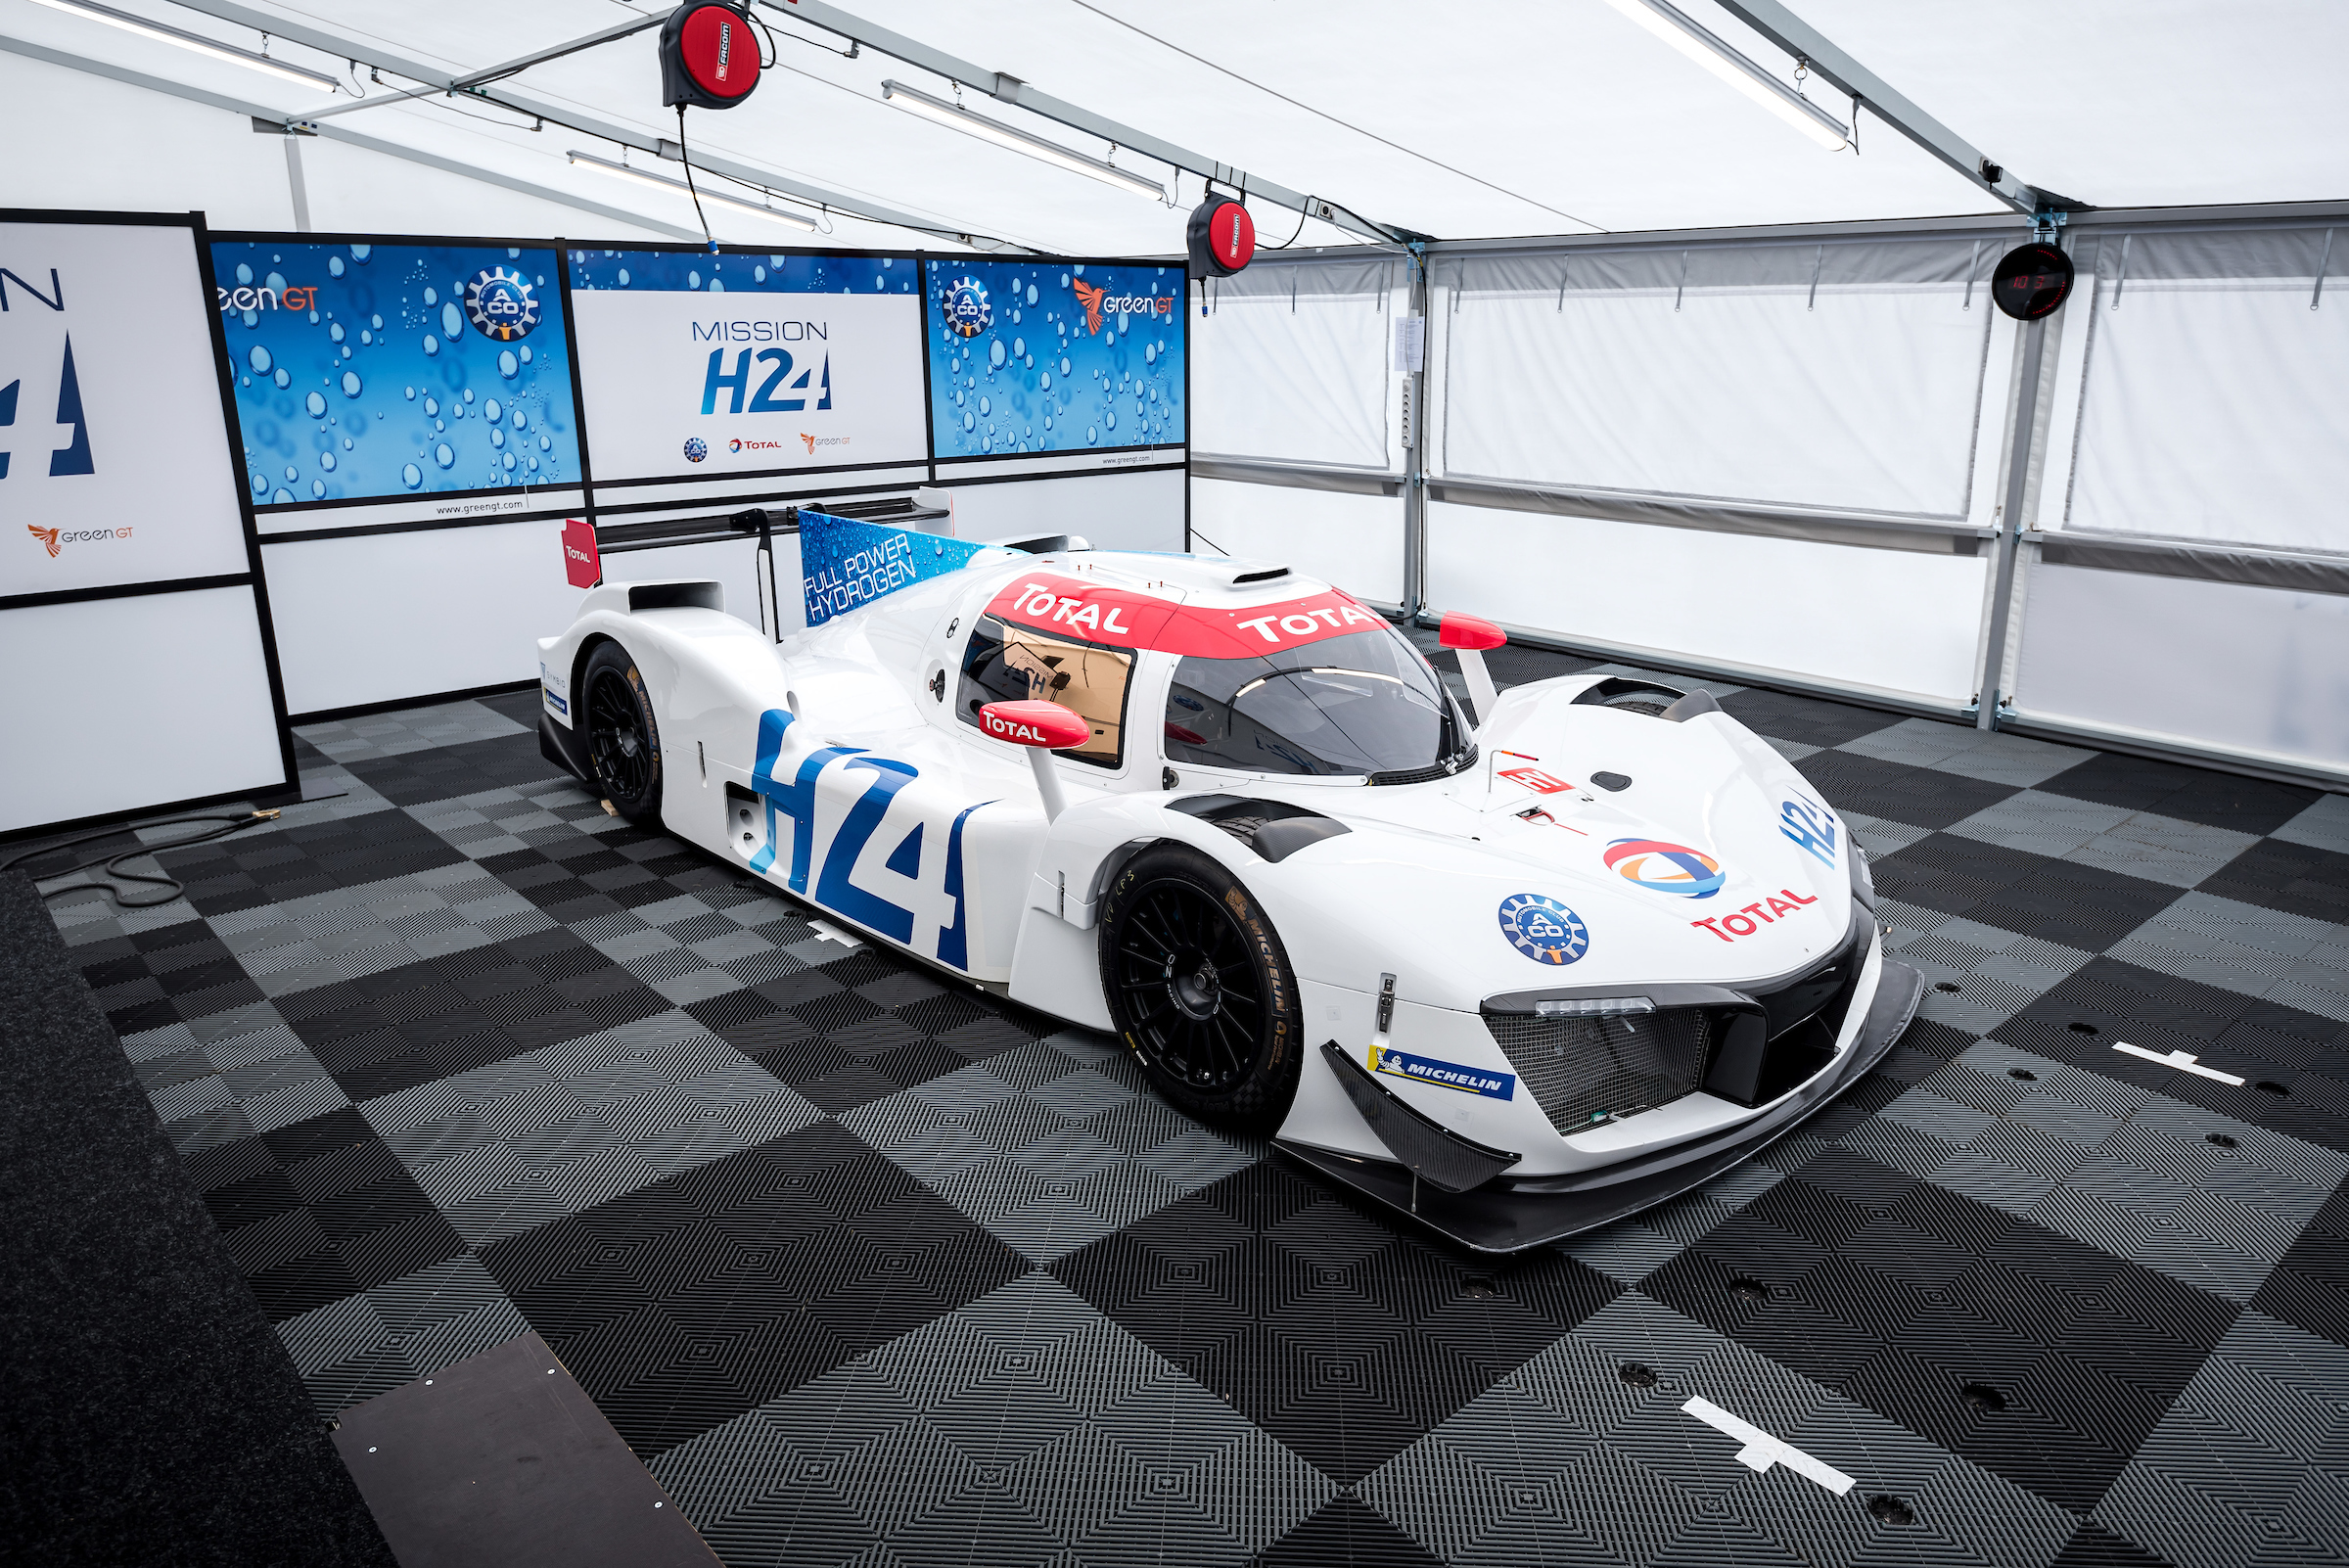 Total Partners with Hydrogen MISSIONH24